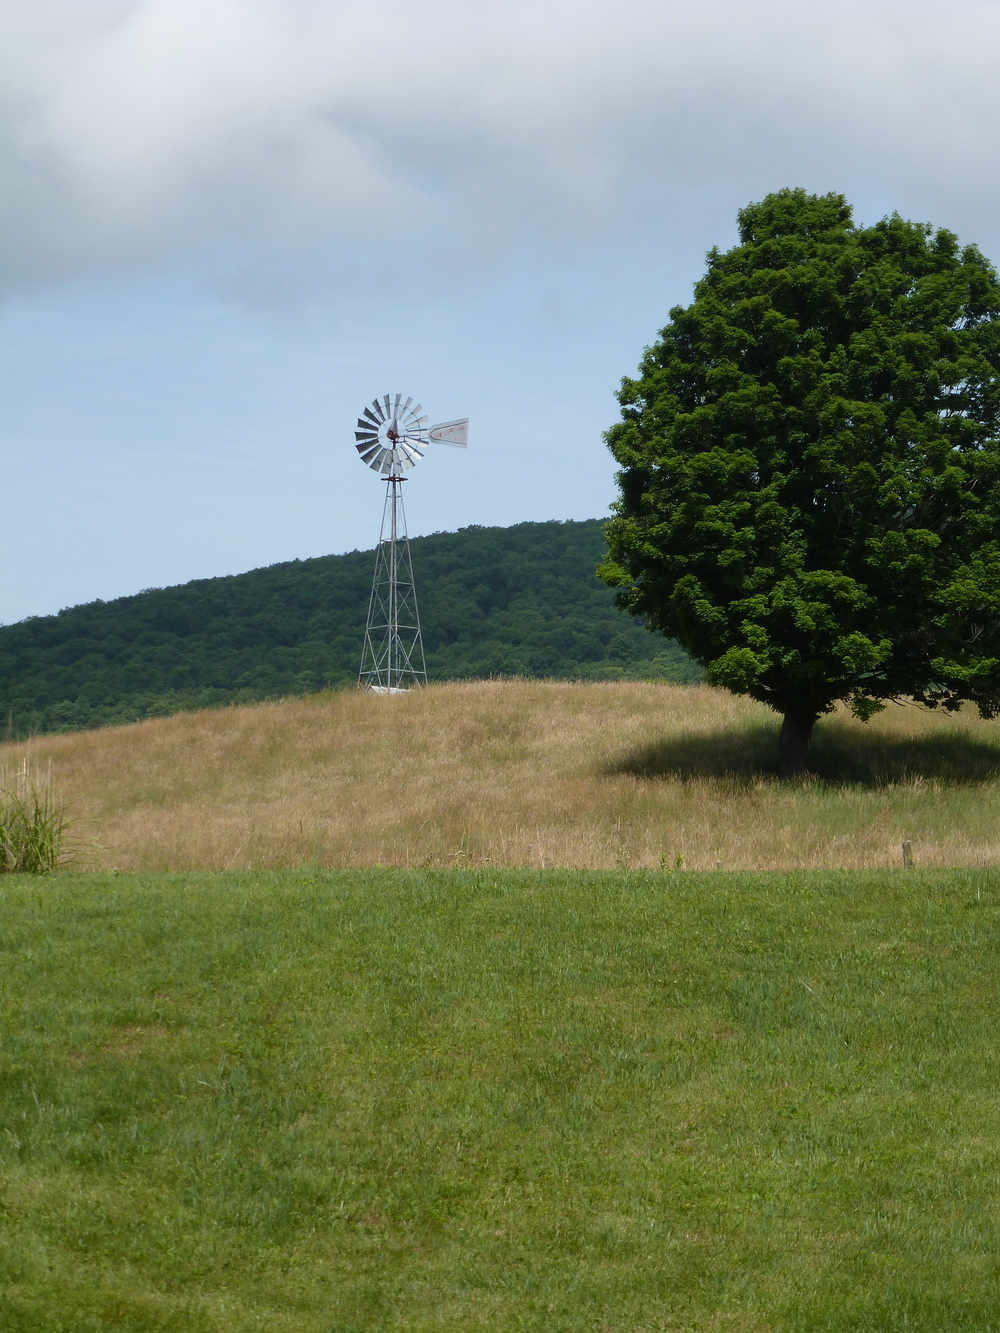 Aeromotor windmill above the farmhouse at the top of the hill